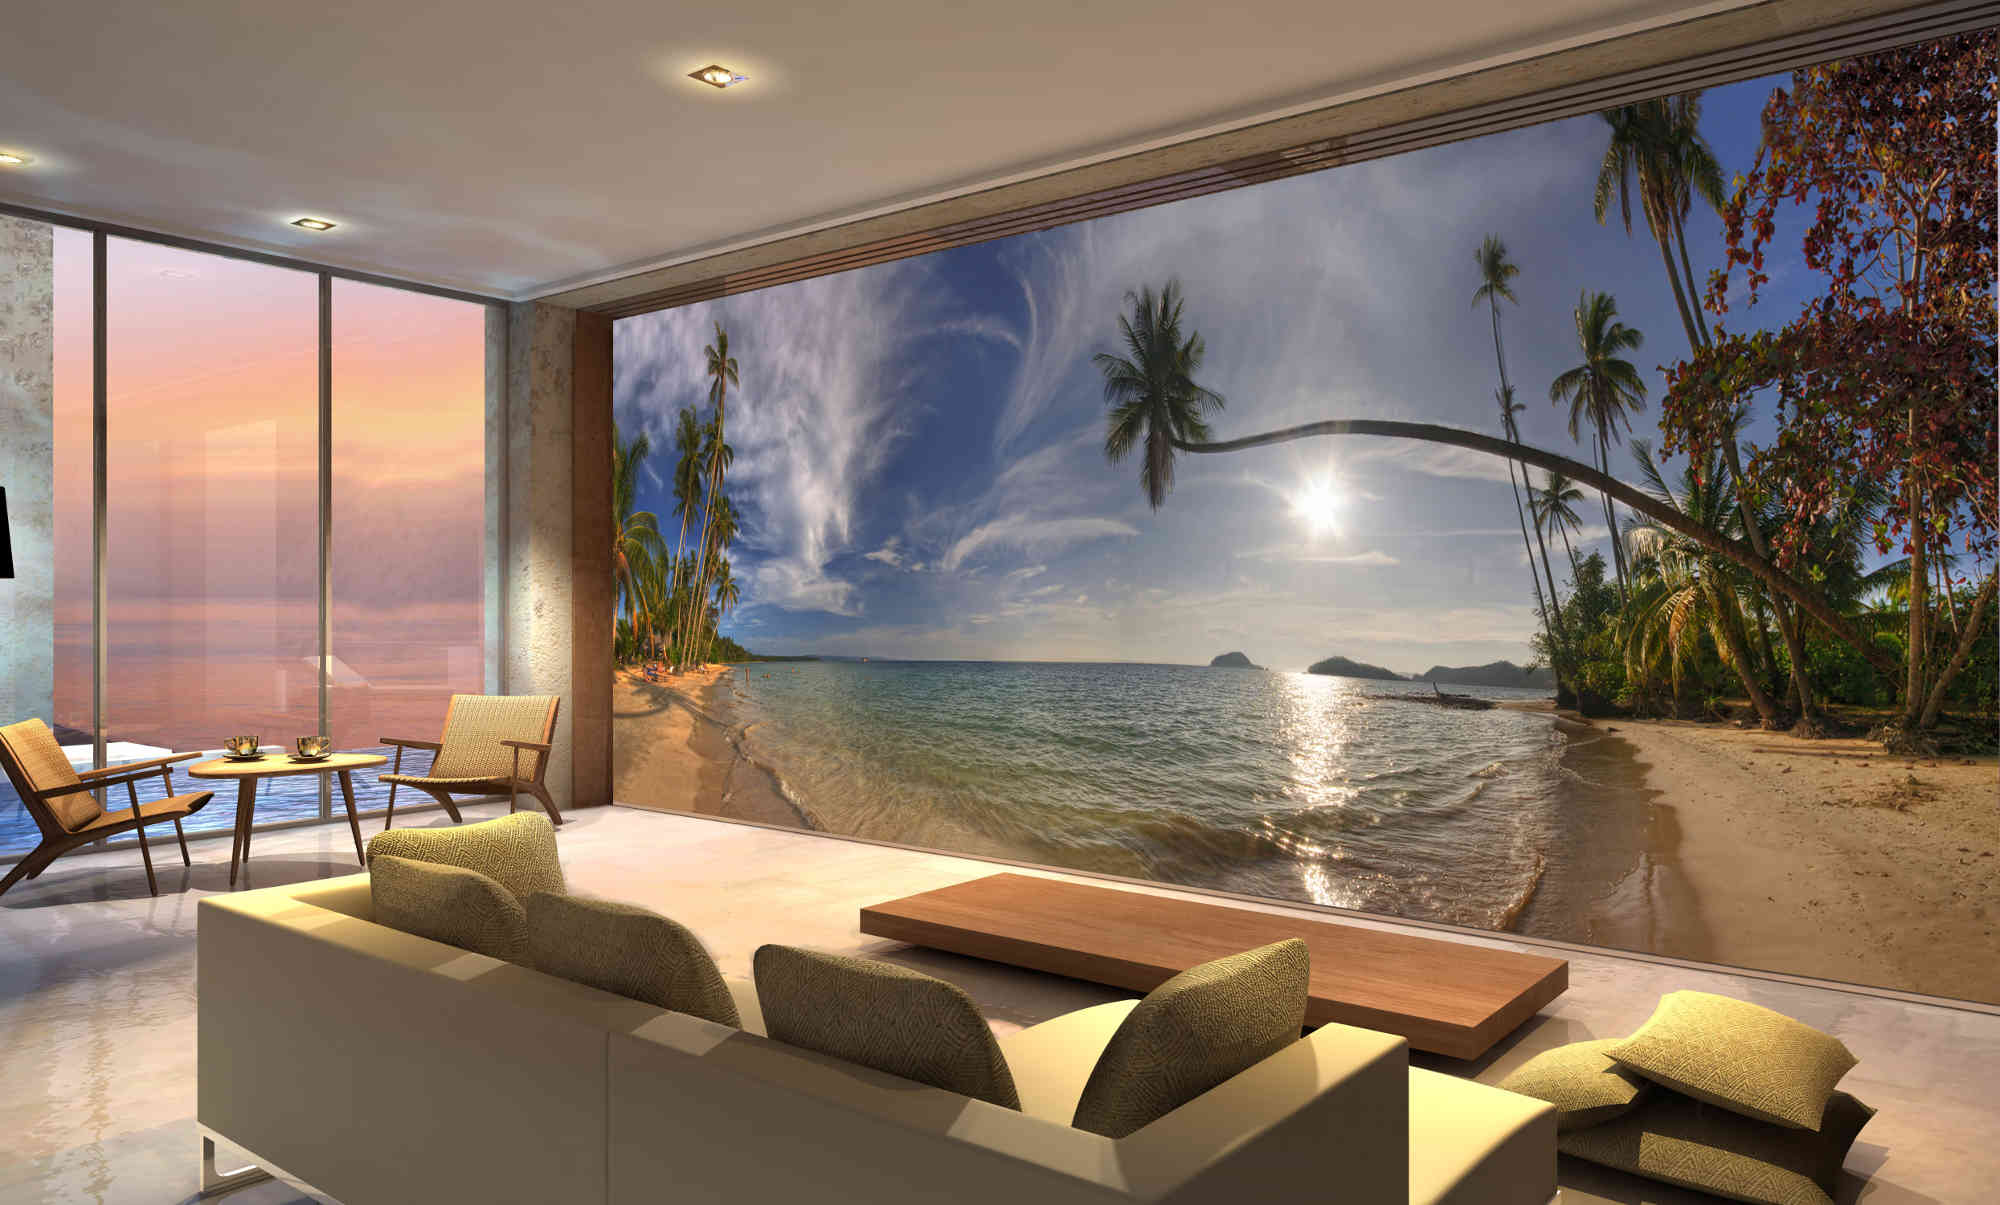 3d Mural Wallpaper Ebay Mural Wallpaper 23 Wallpapers Adorable Wallpapers